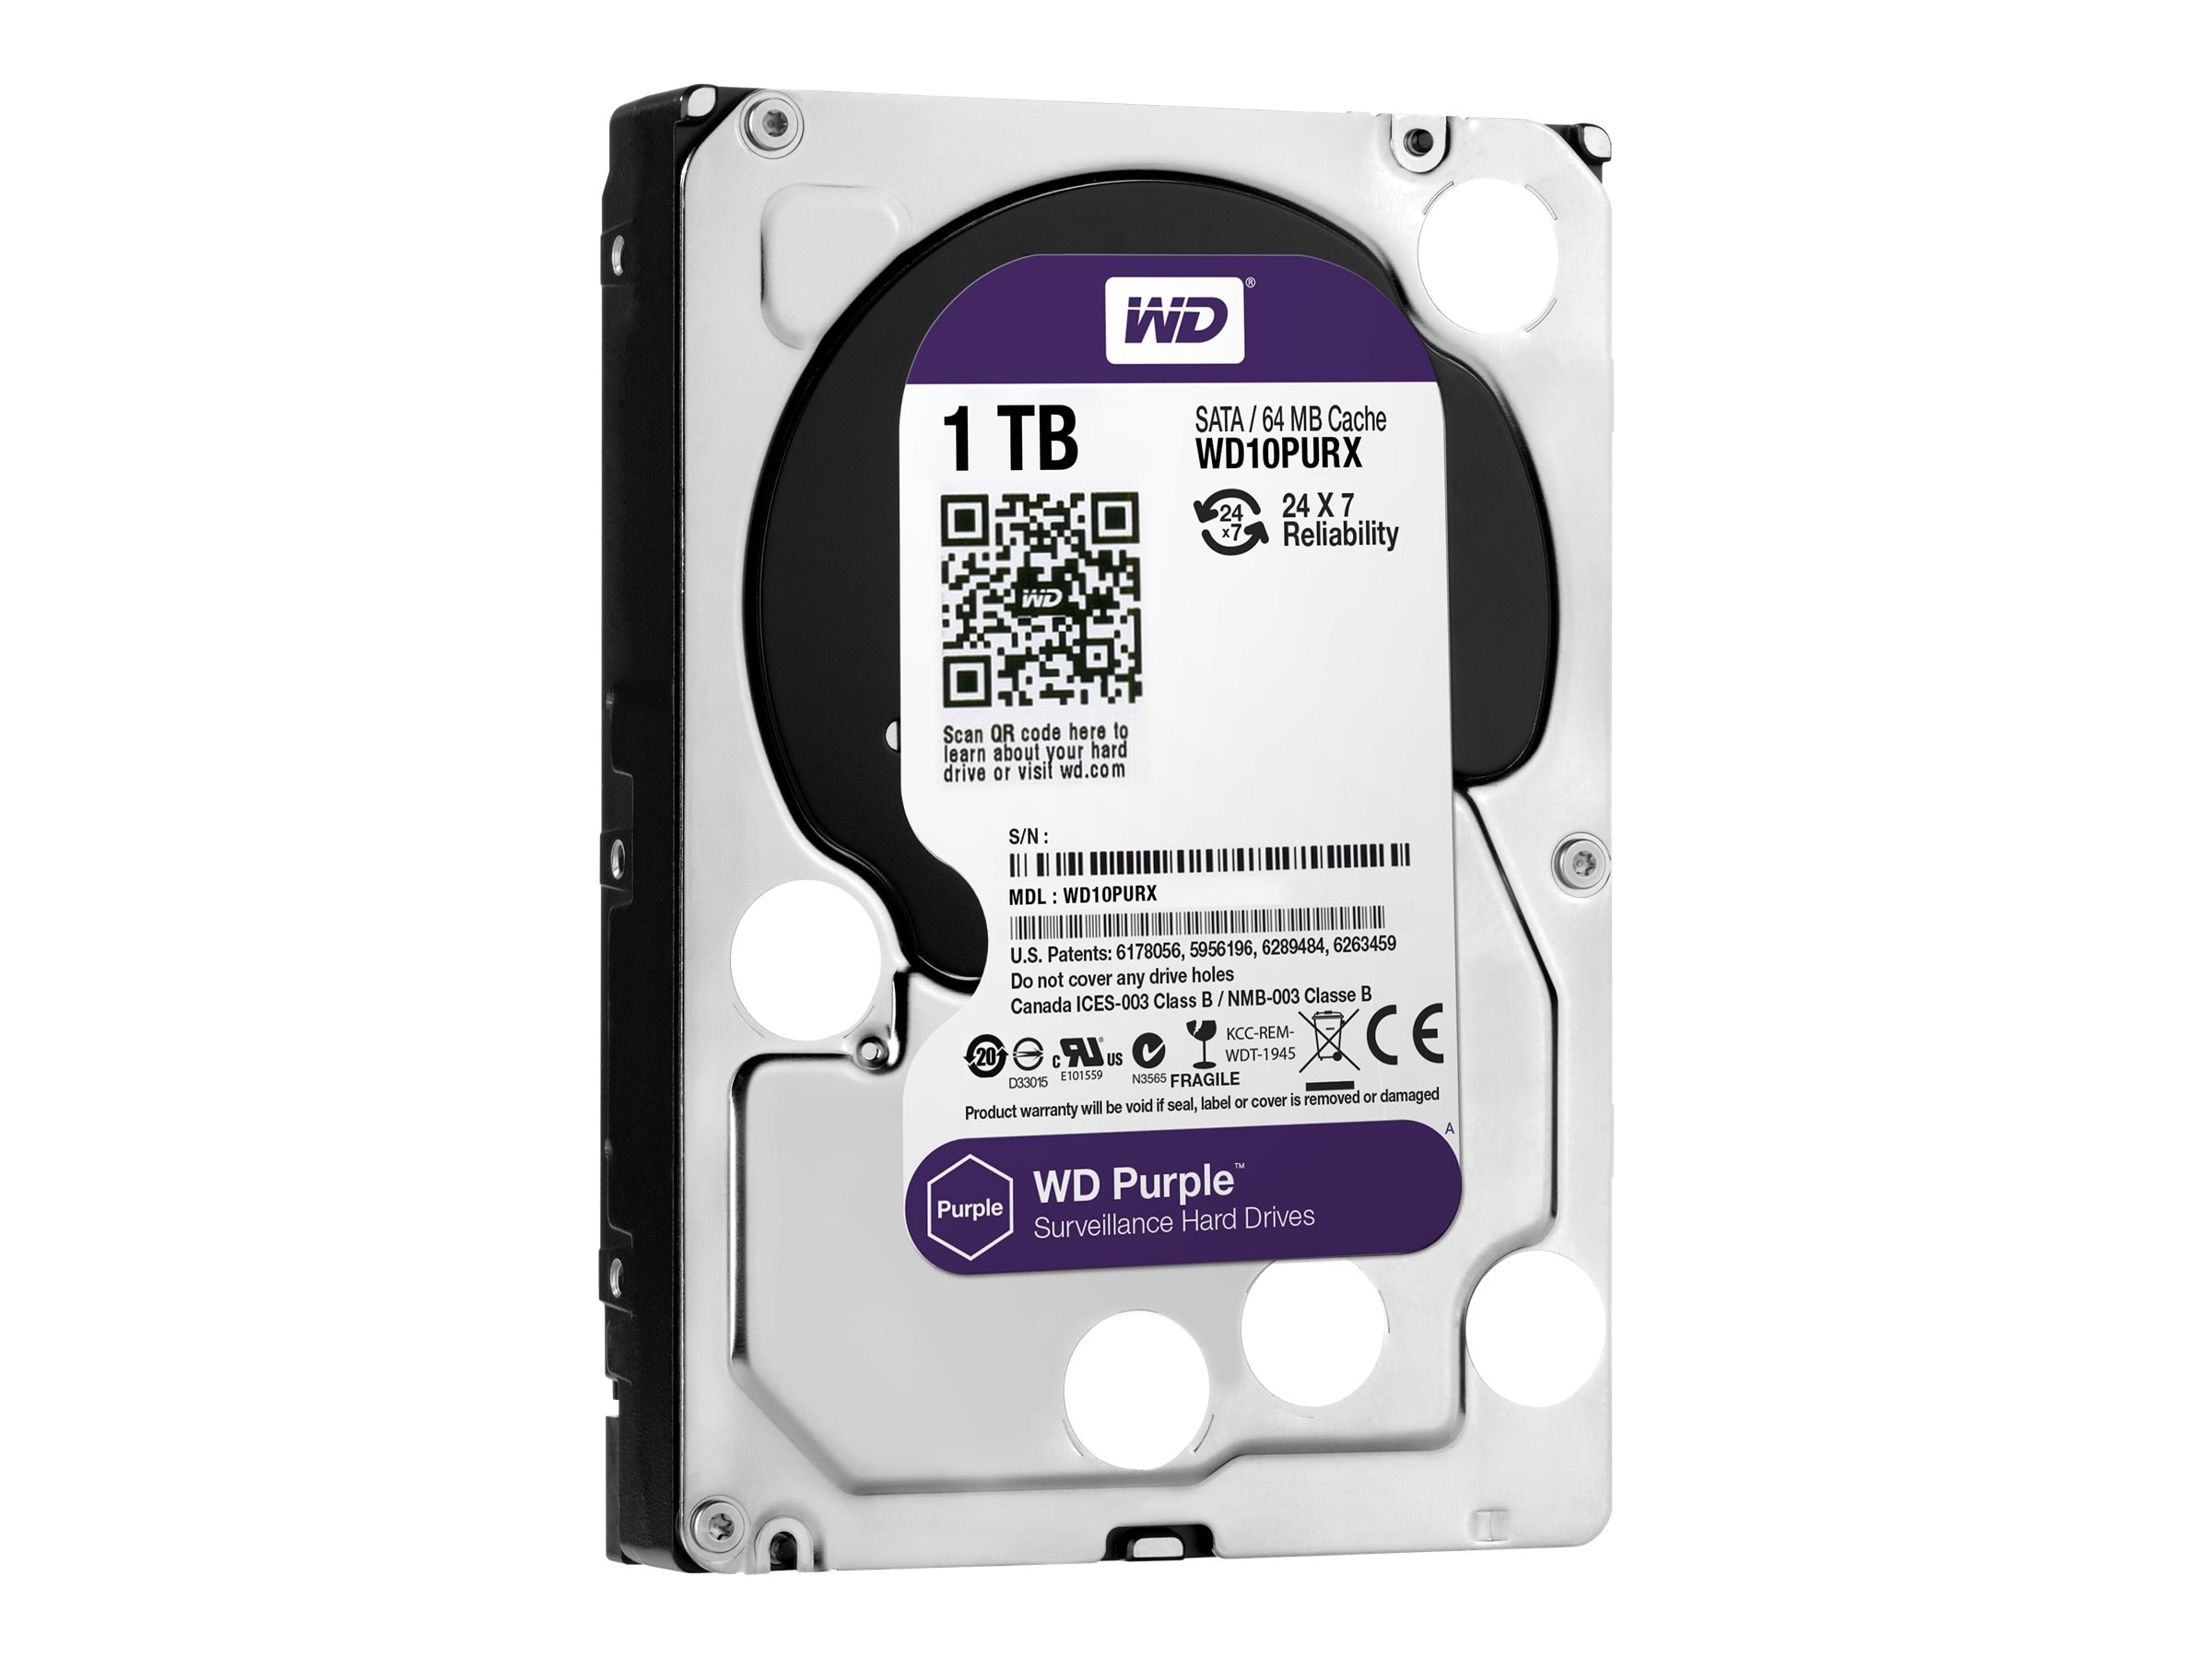 WD 1TB WD Purple SATA 6Gb s 3.5 Internal Surveillance Hard Drive, WD10PURX